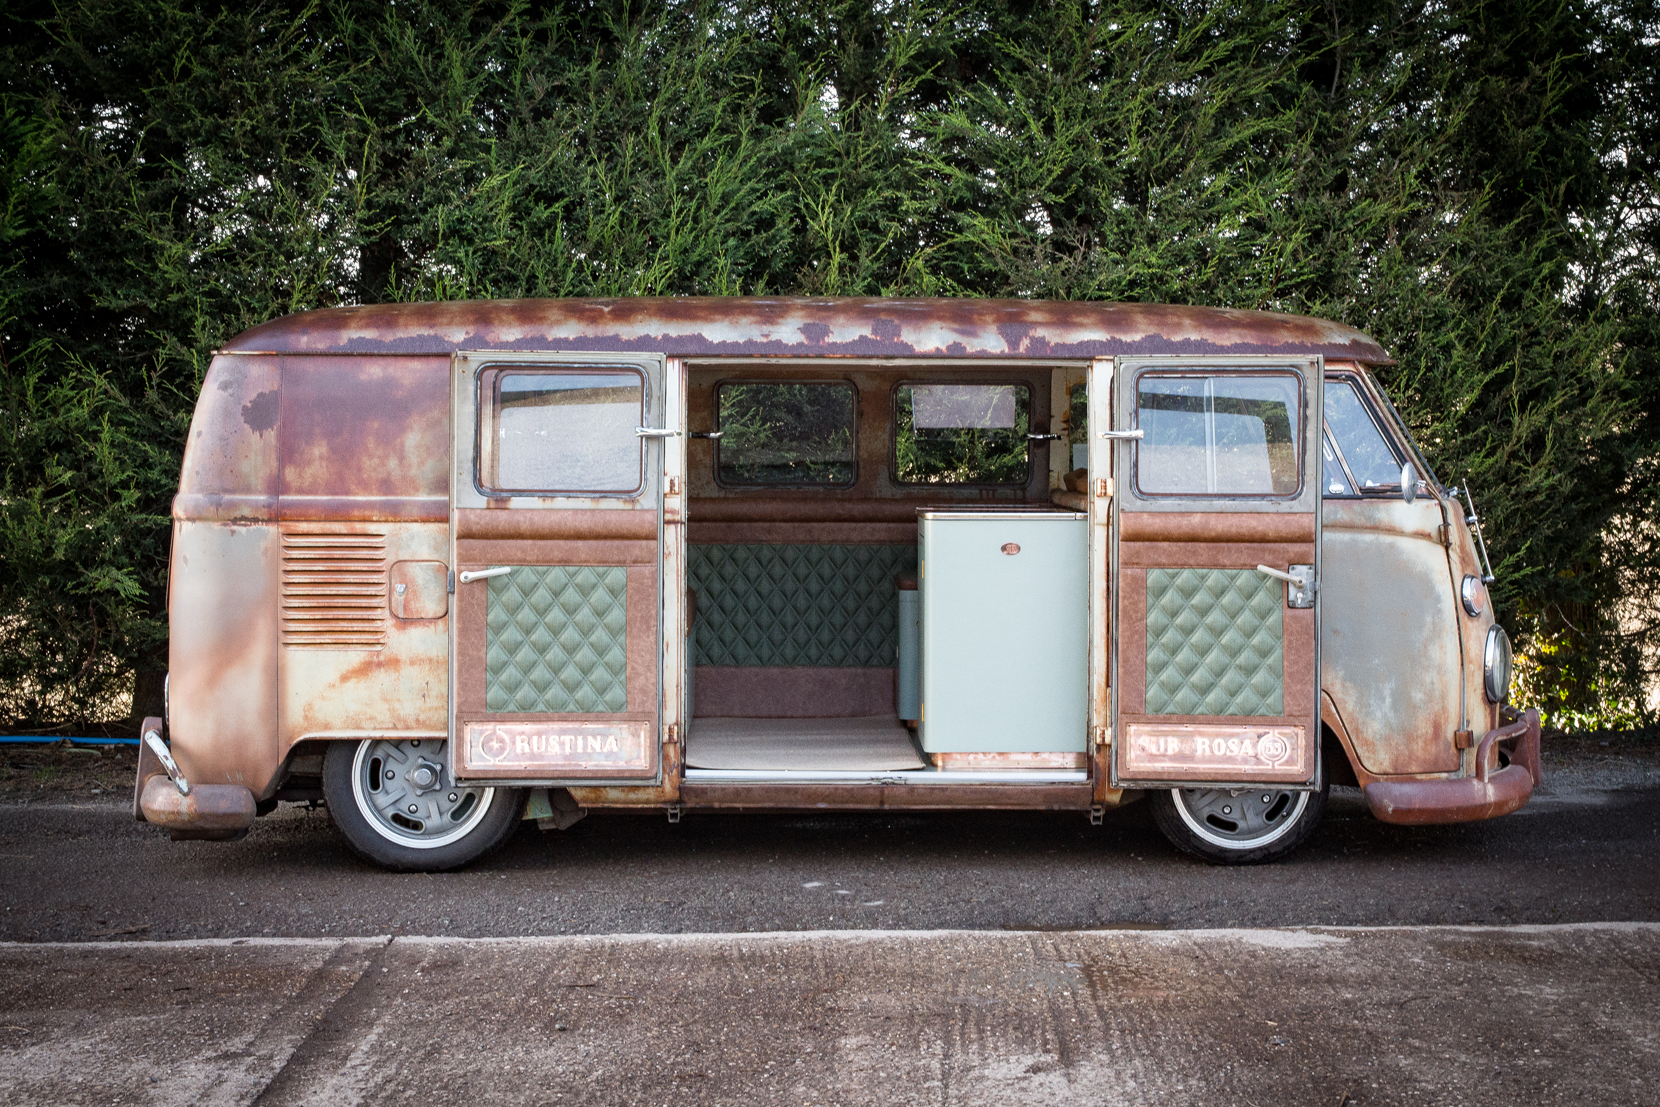 classic car photography derbyshire fivecreative split screen camper Rustina